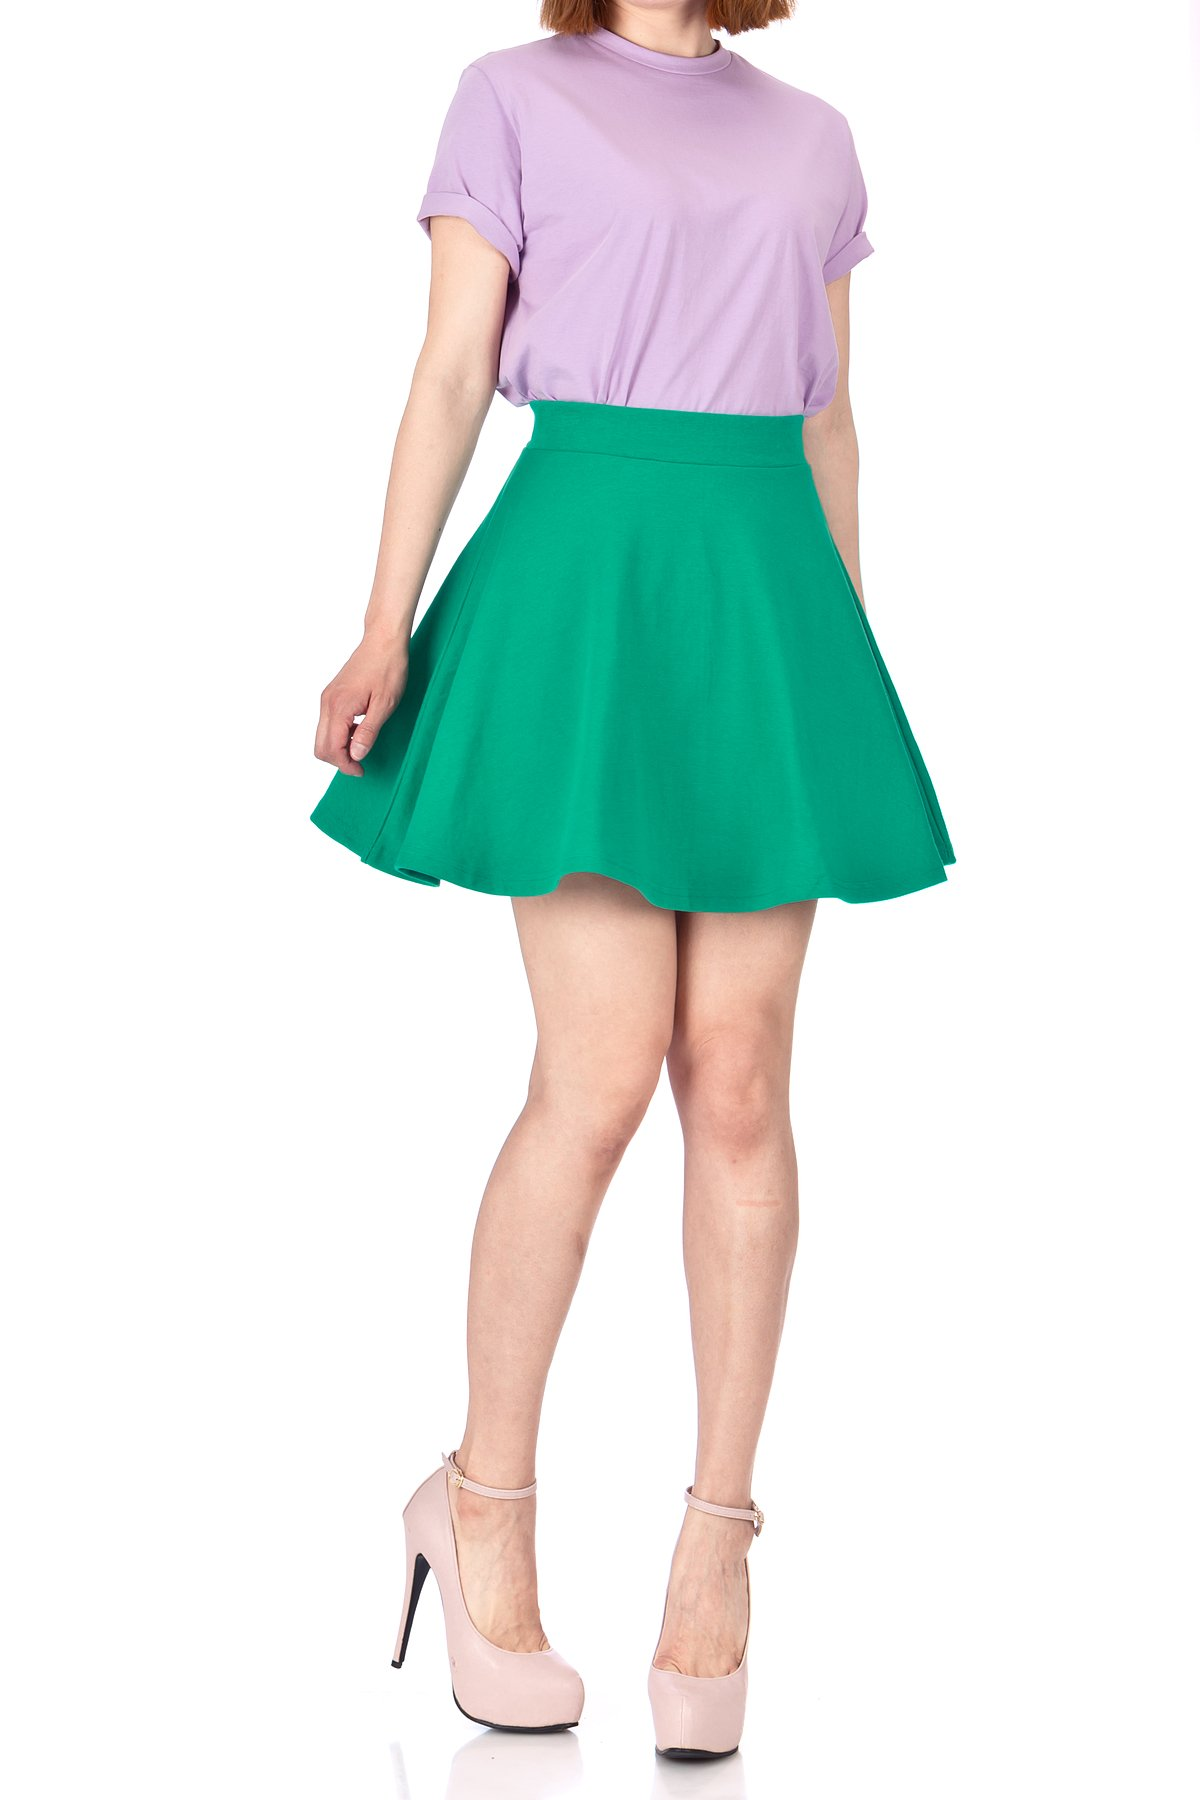 Basic Solid Stretchy Cotton High Waist A line Flared Skater Mini Skirt Green 01